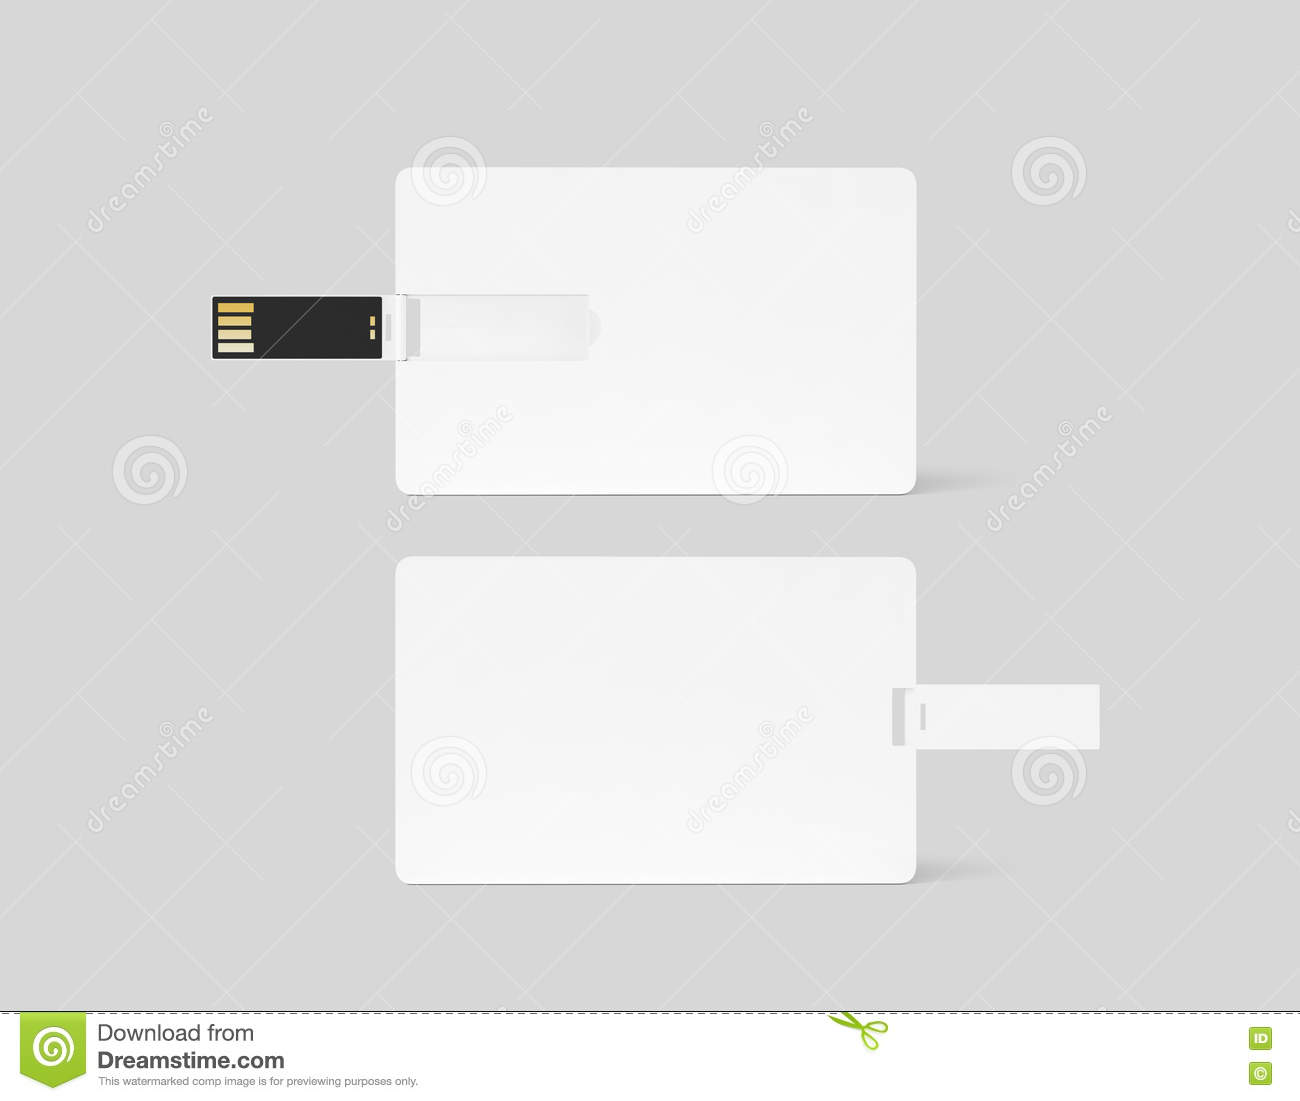 Blank White Plastic Wafer Usb Card Design Mockup Stock Image - Image ...